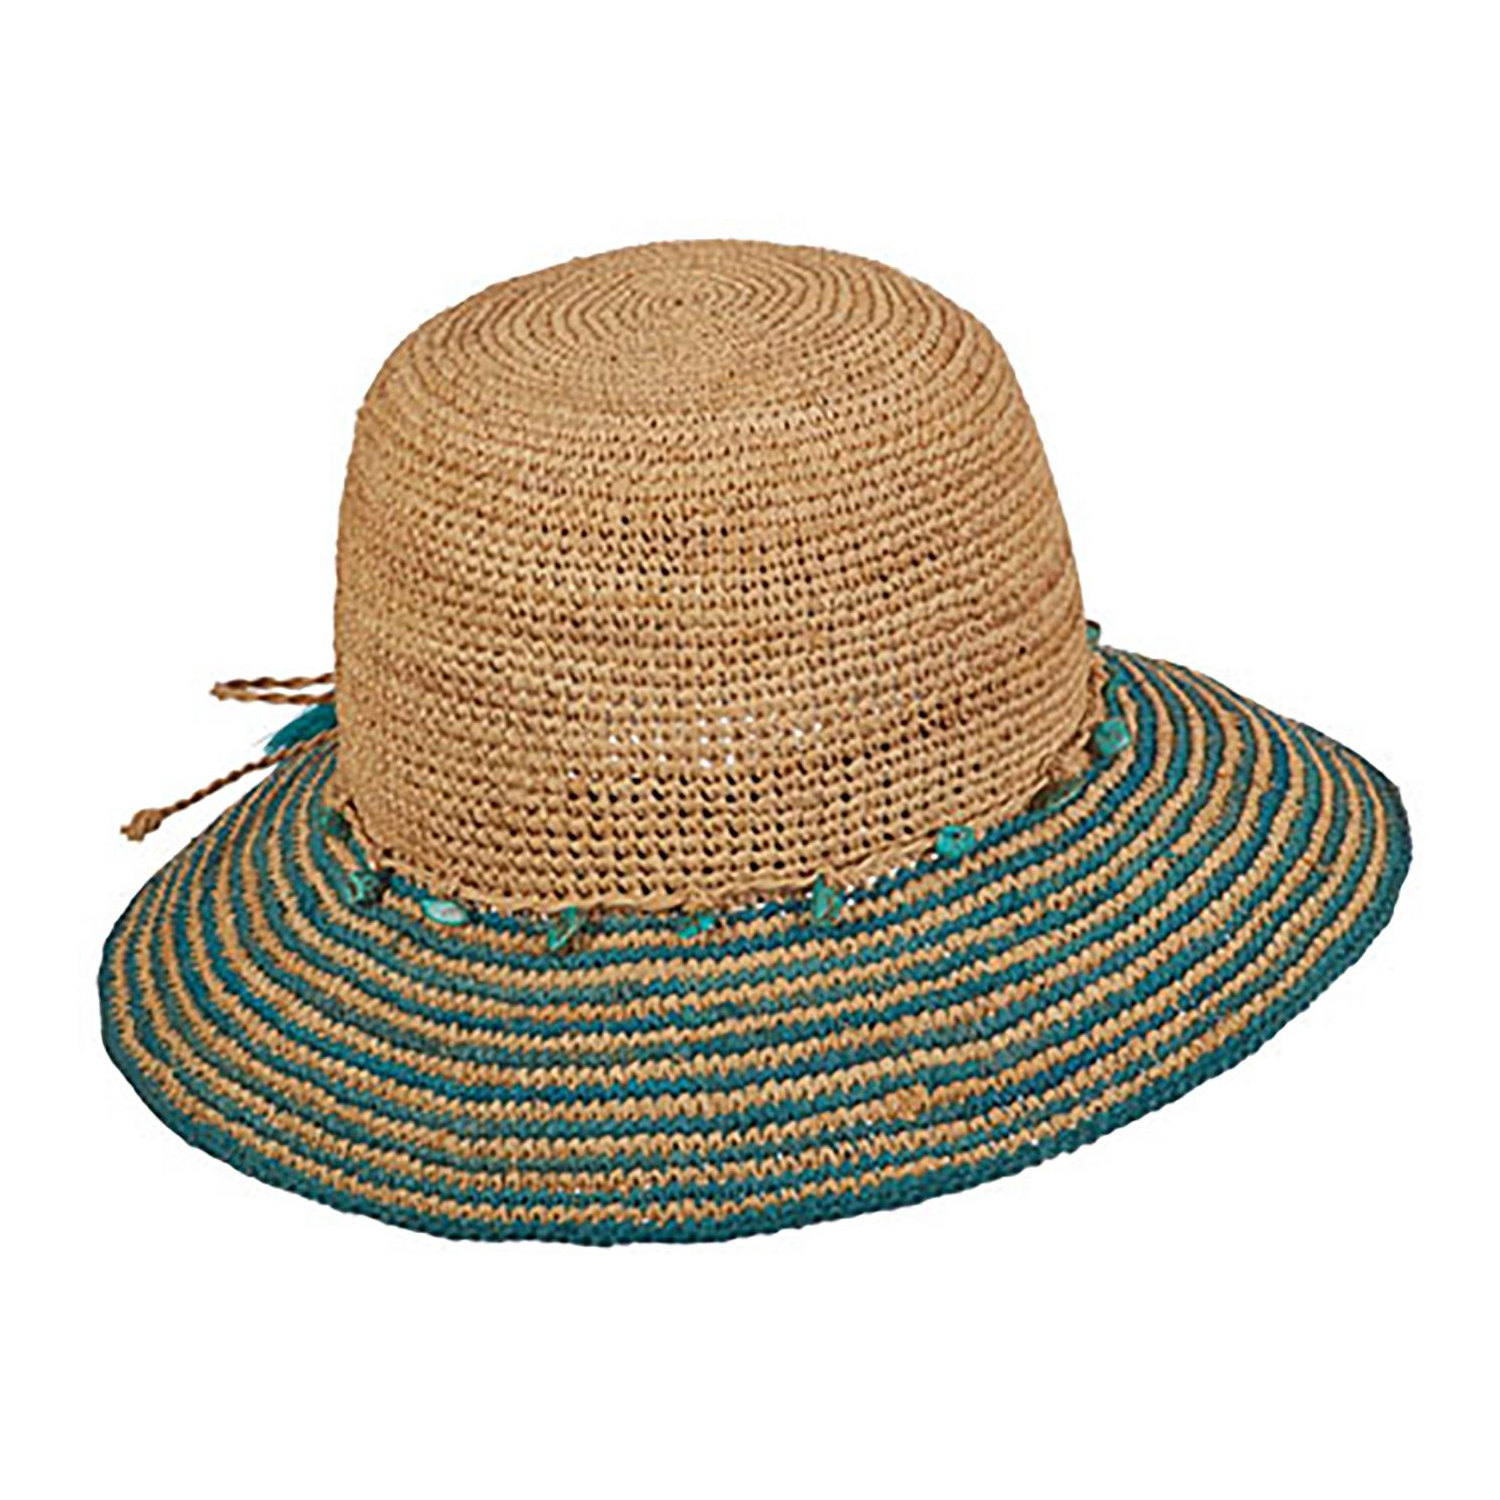 df3b8b614 Details about Tommy Bahama Womens Raffia Bucket Hat with Turquoise Trim  (Turquoise, One Size)